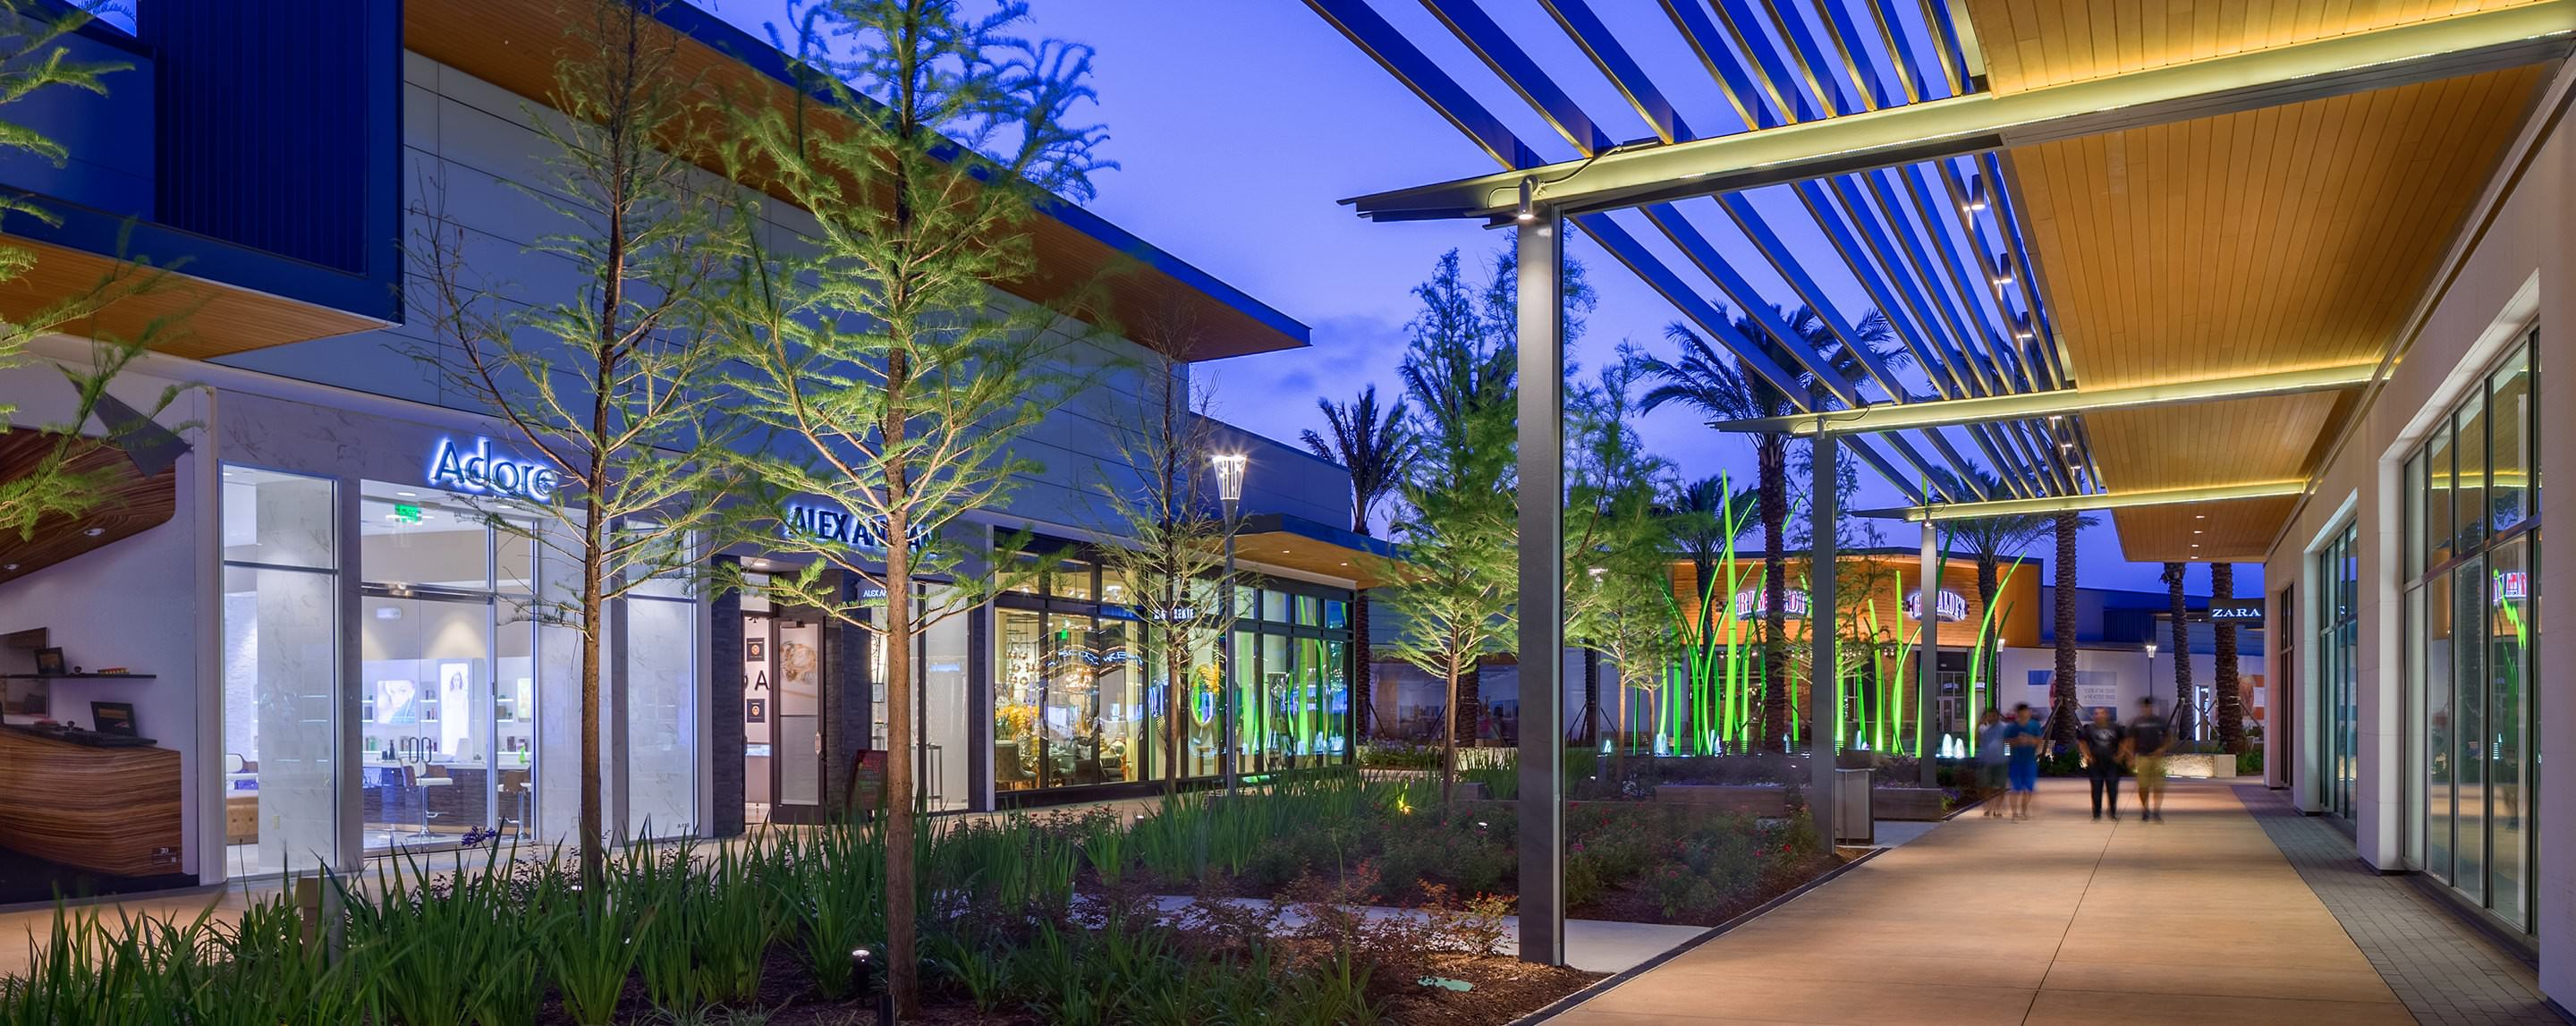 An outside walkway of Baybrook mall is lit up at night for shoppers to look at storefronts, trees, and greenery.